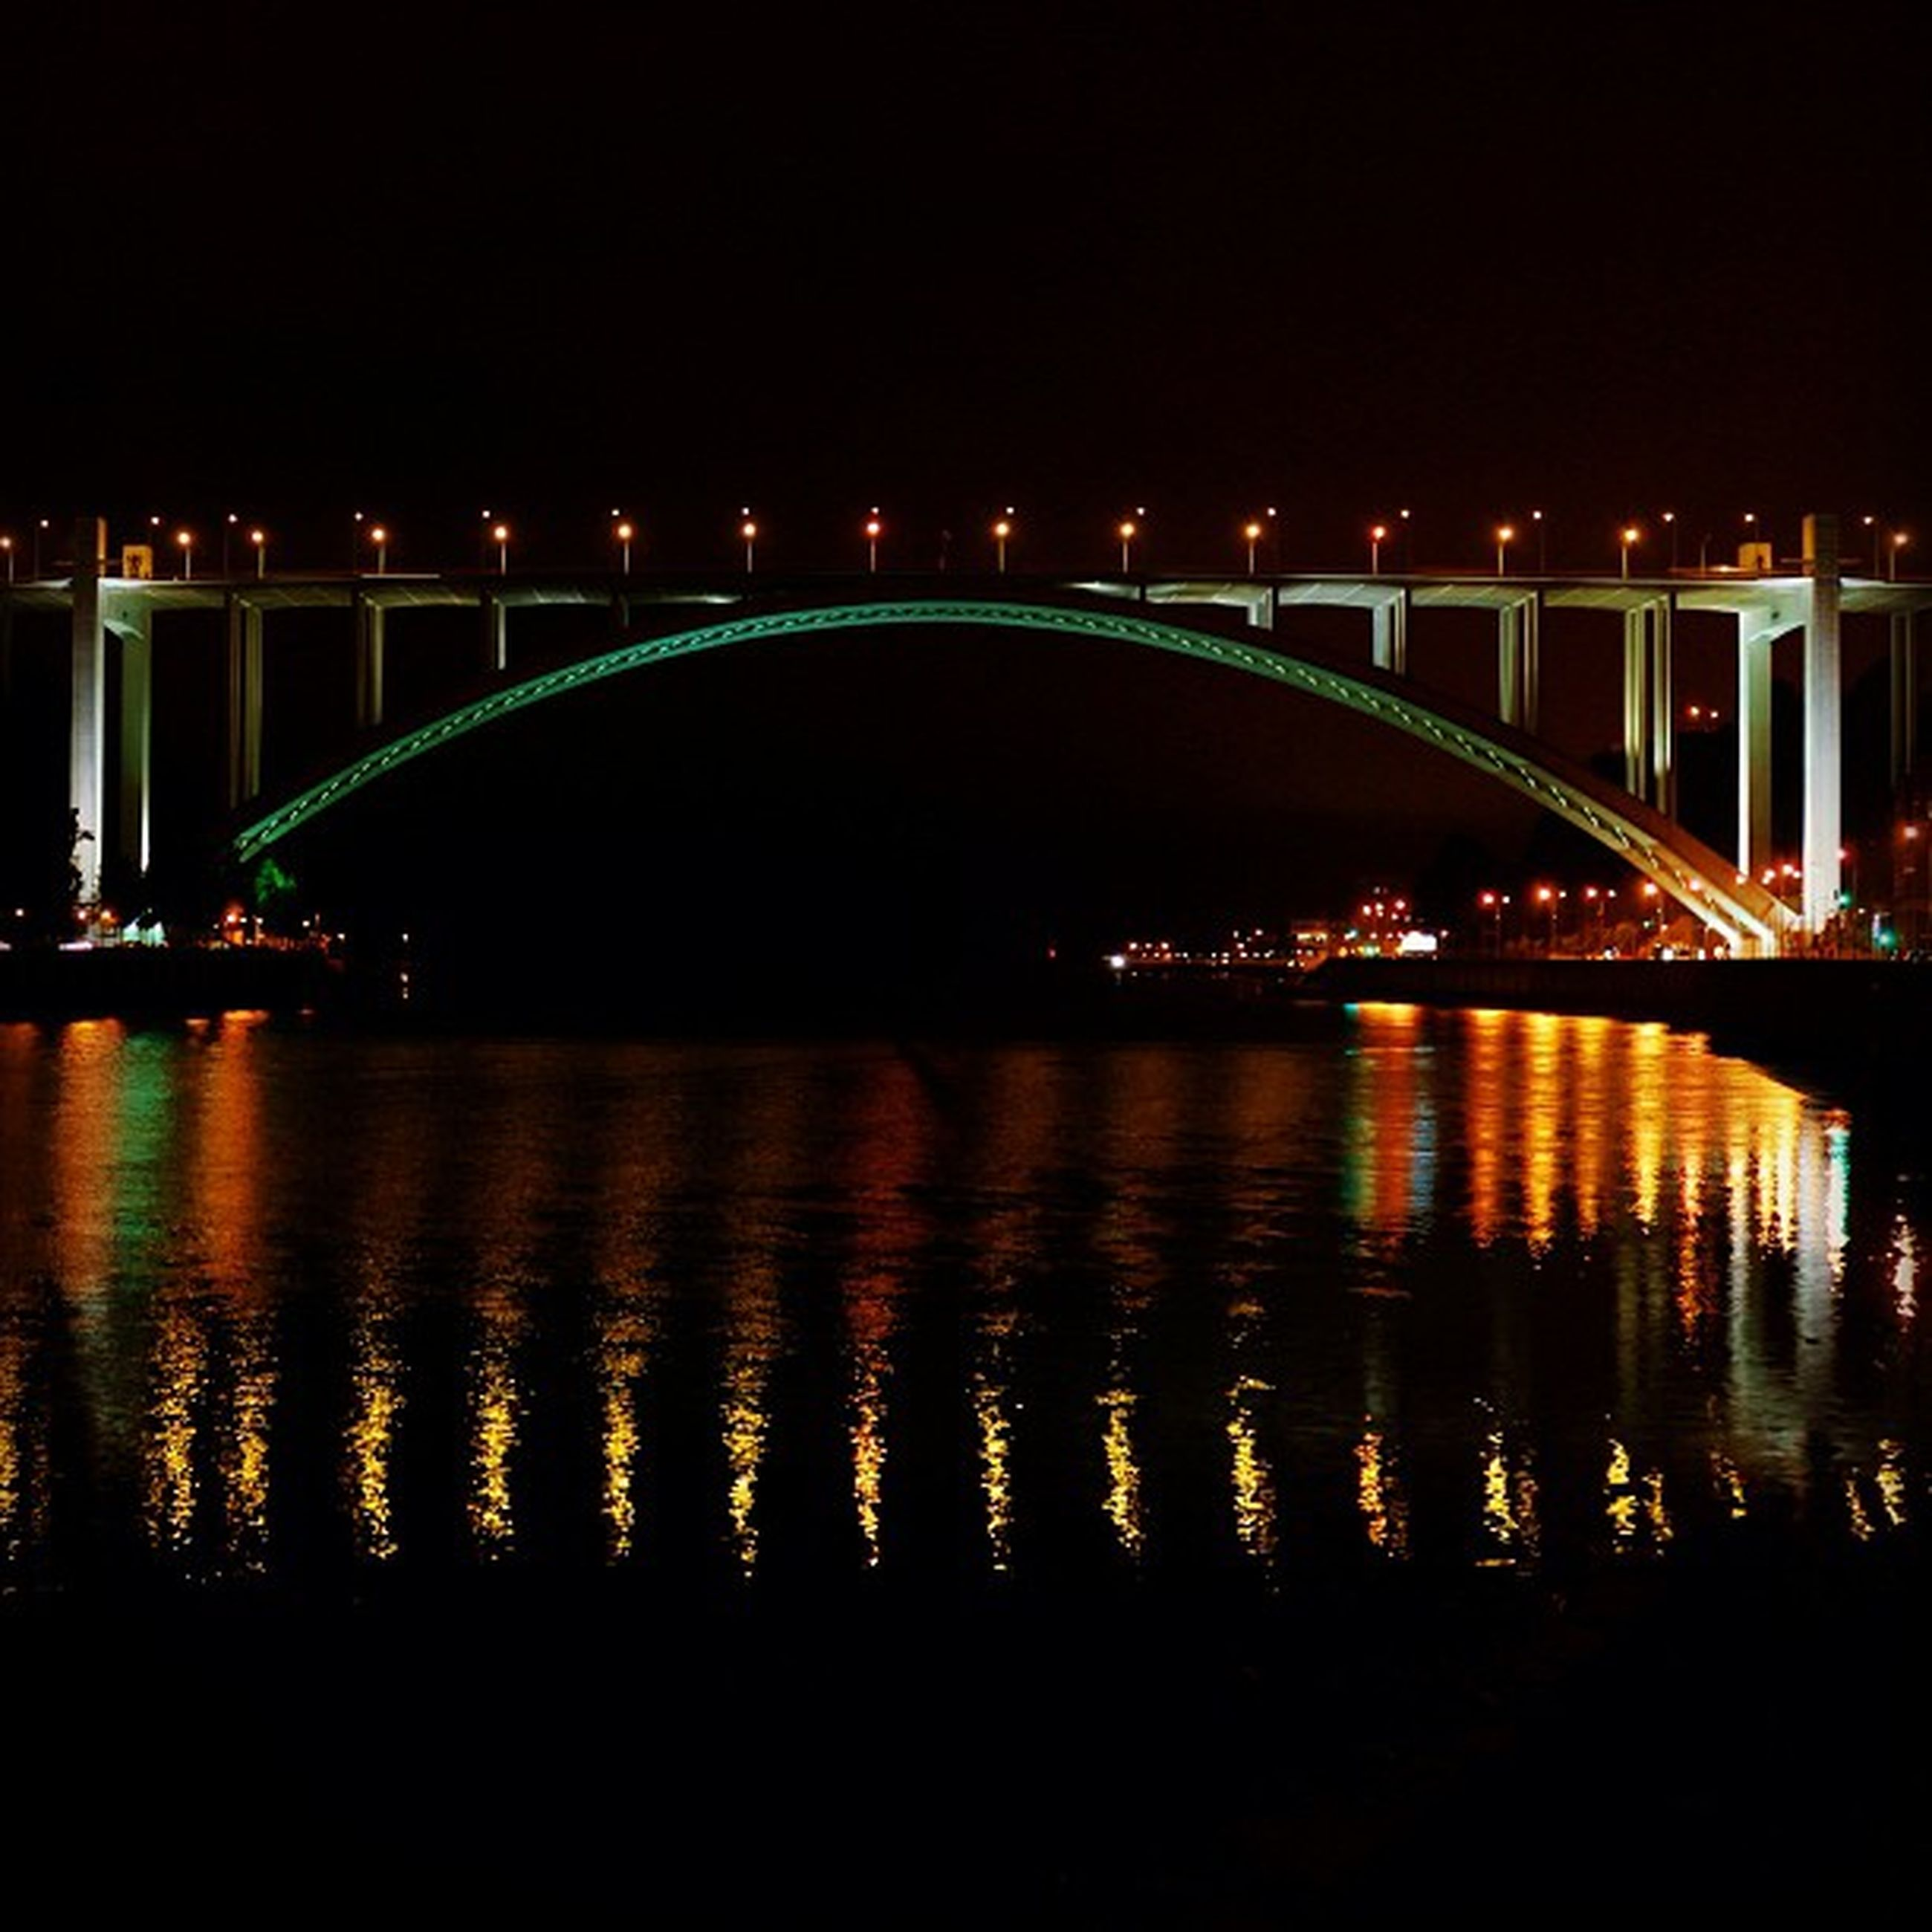 illuminated, night, water, reflection, bridge - man made structure, connection, river, bridge, built structure, architecture, street light, waterfront, lighting equipment, arch bridge, outdoors, dark, engineering, tranquility, arch, no people